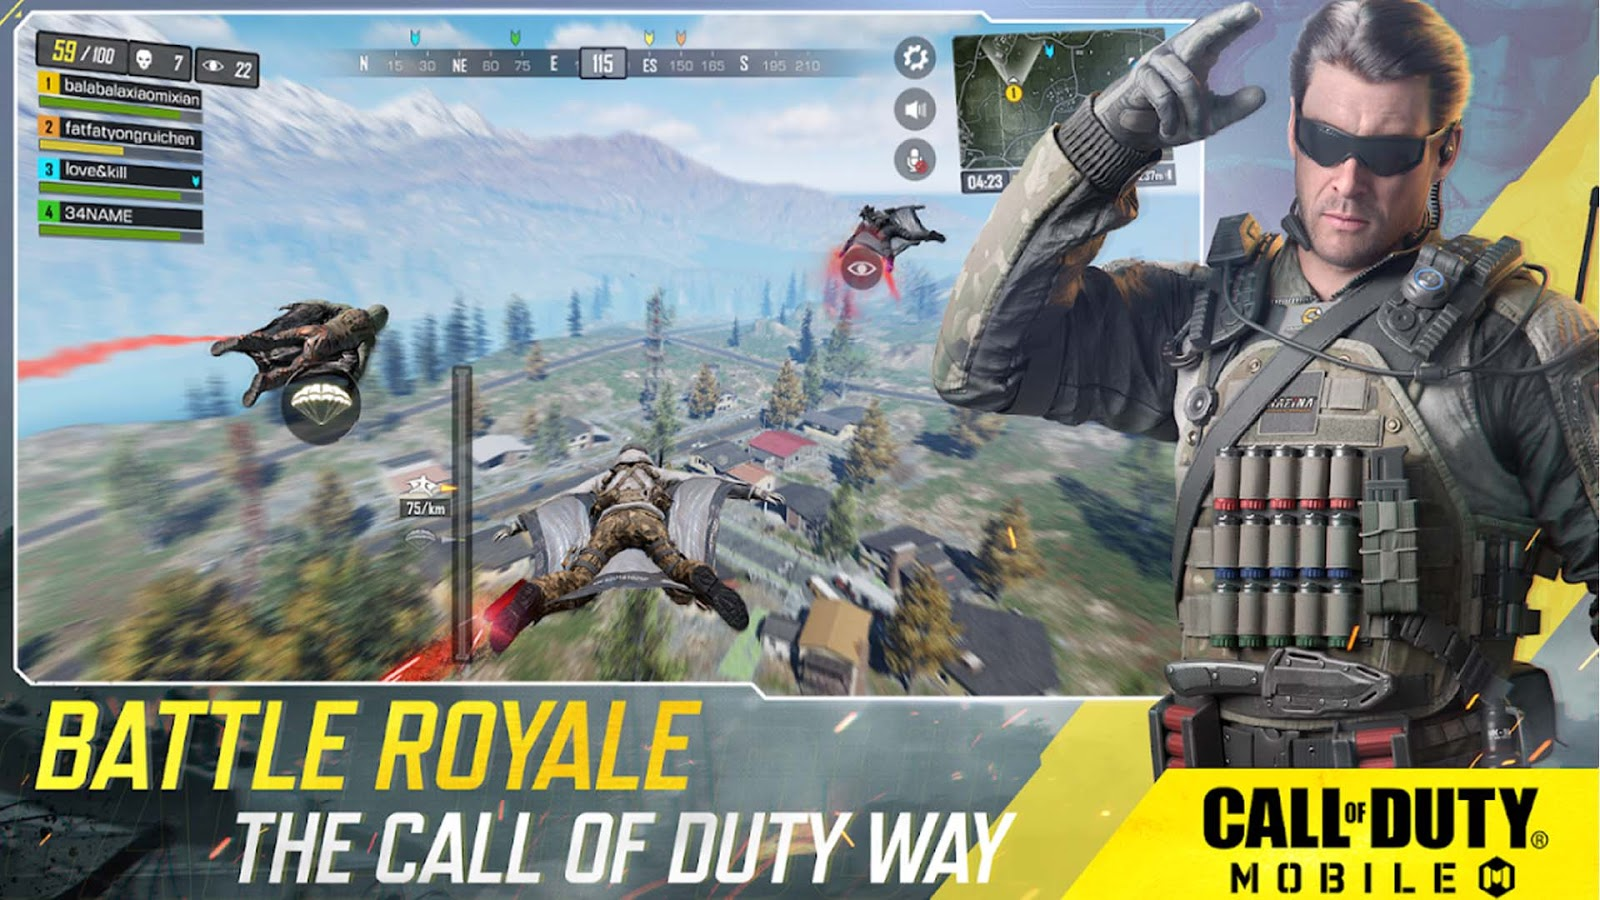 Call of duty mobile version image